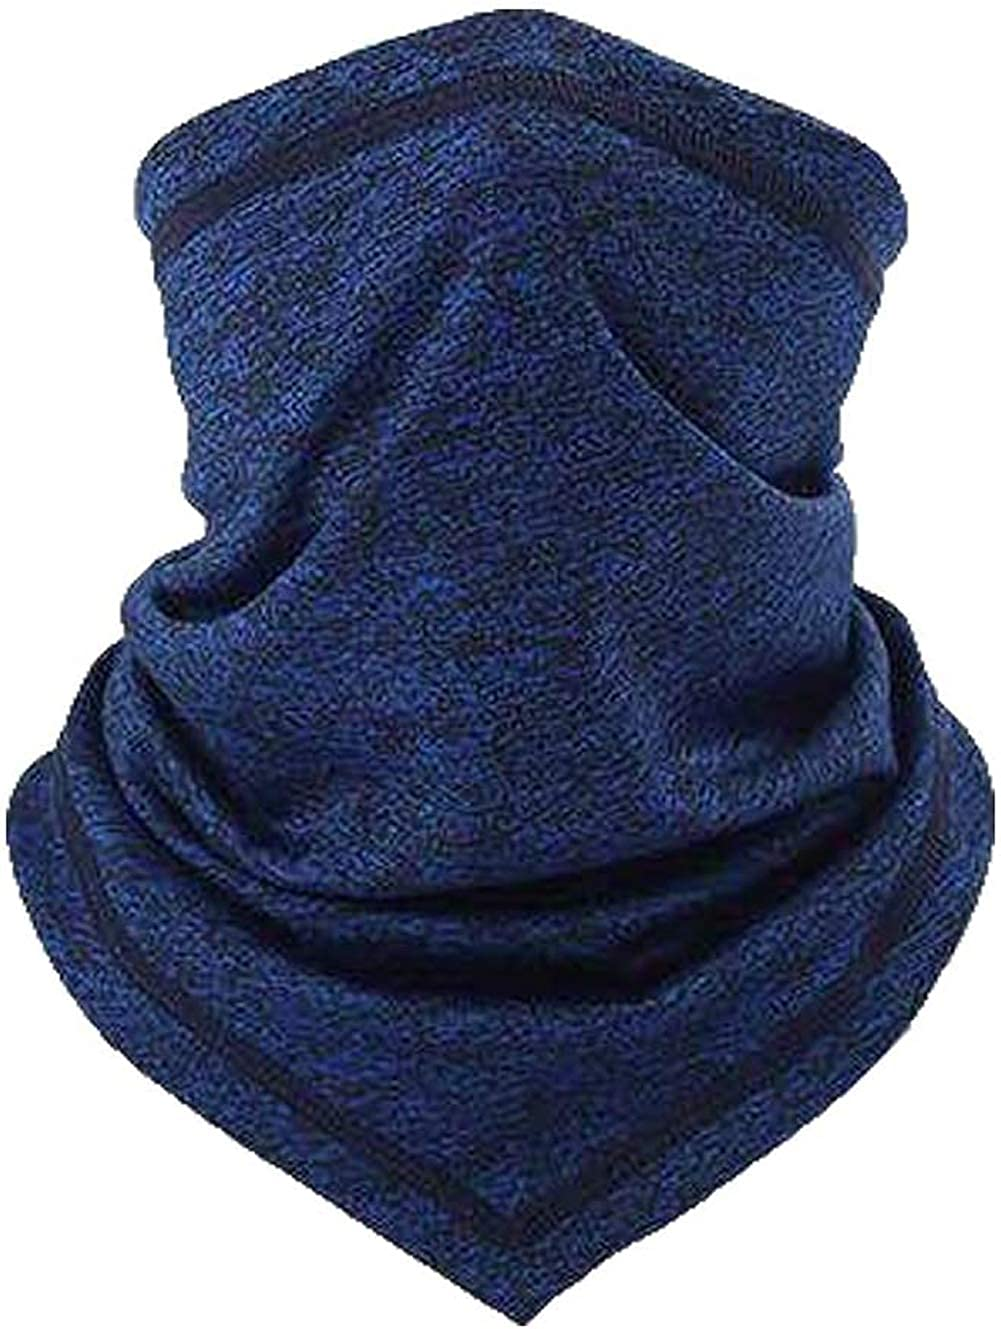 IIY Summer Cooling Neck Gaiter Face Scarf/Neck Cover/Face Cover for Sun Protection Fishing Hiking Running Cycling